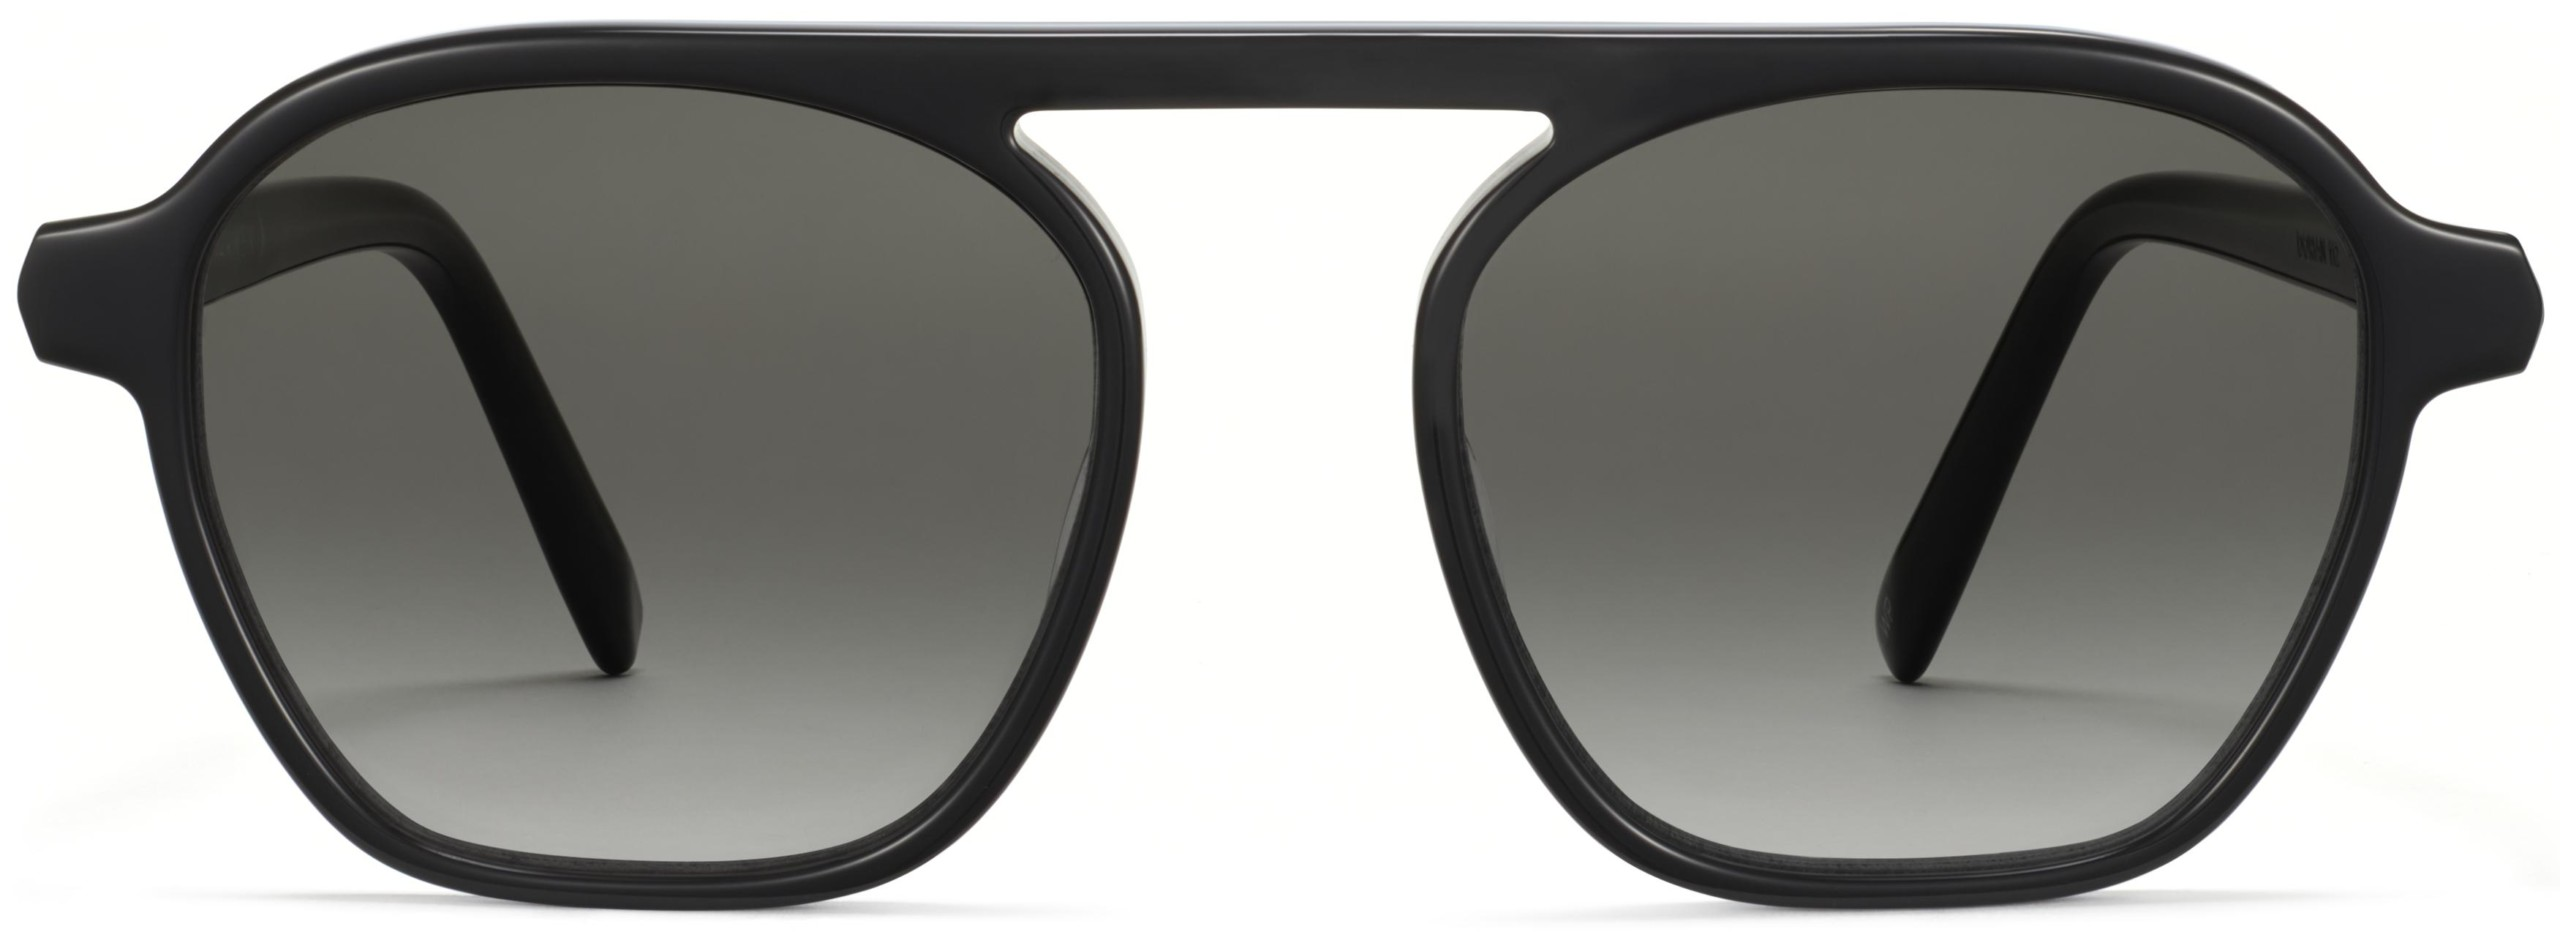 Front View Image of Dorian Sunglasses Collection, by Warby Parker Brand, in Ebone fog Eclipse Color